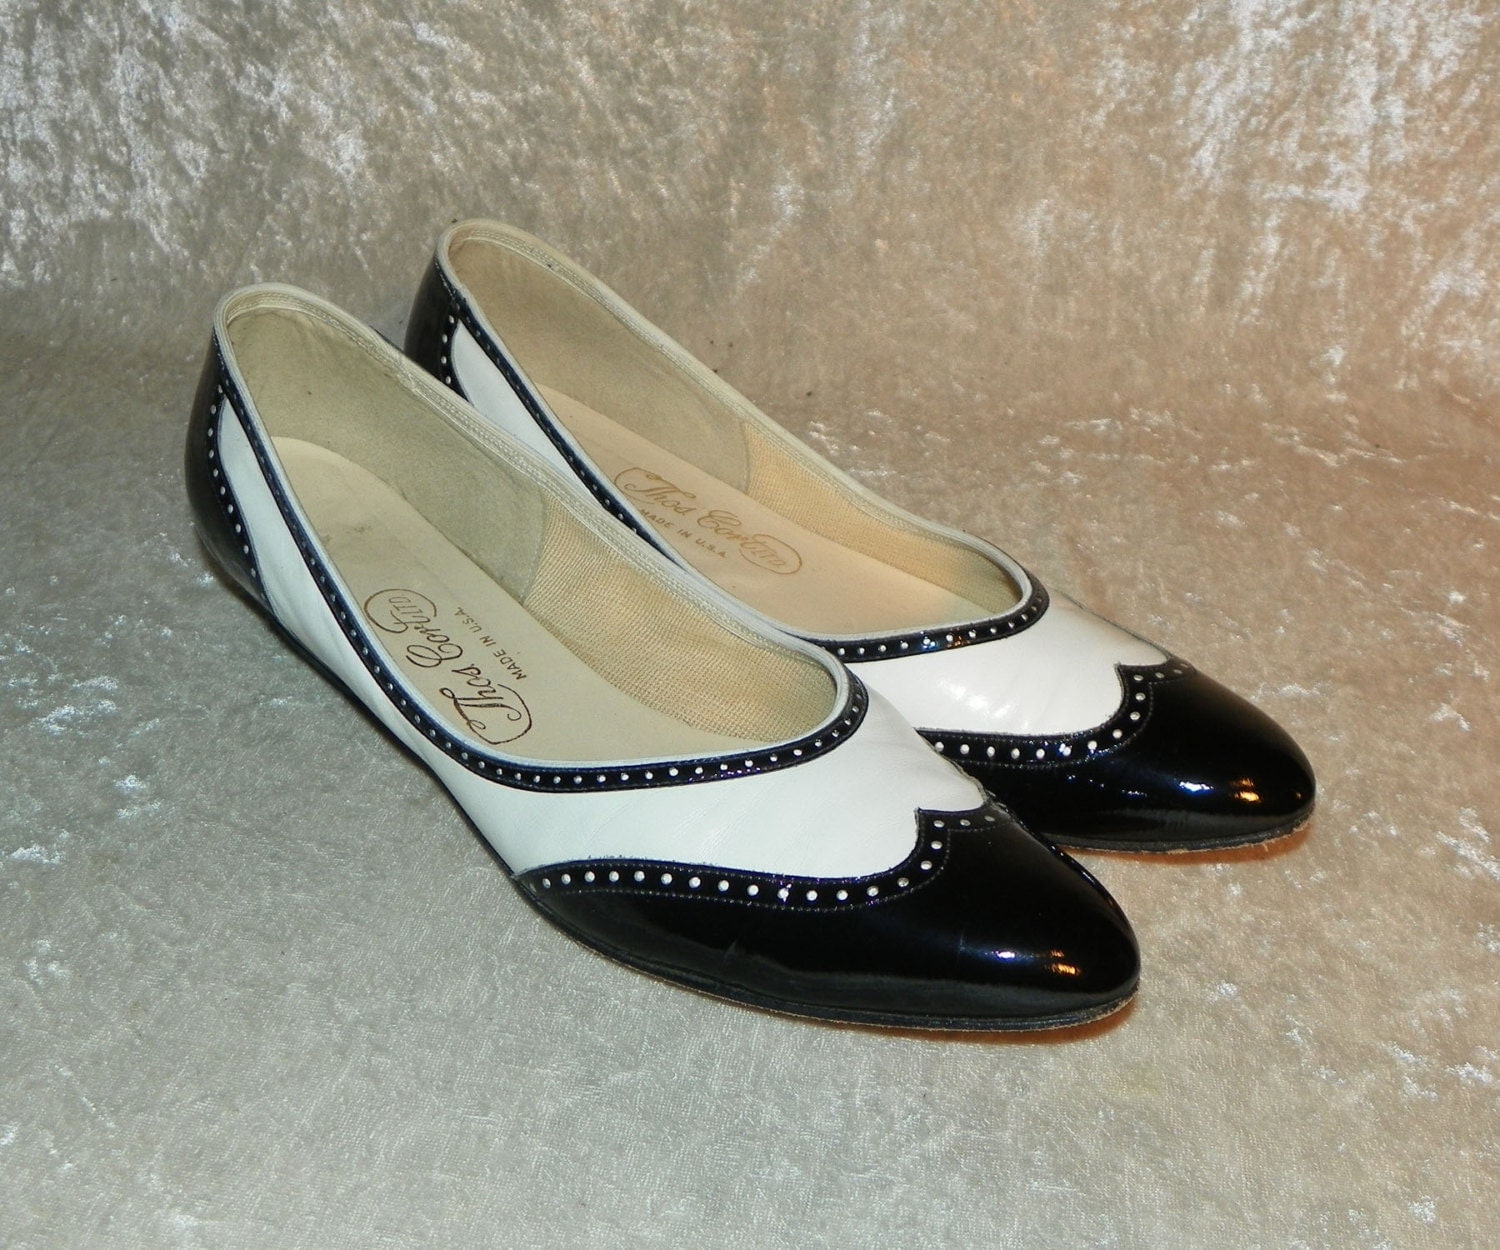 shoes black white wingtip spectator shoes flats leather